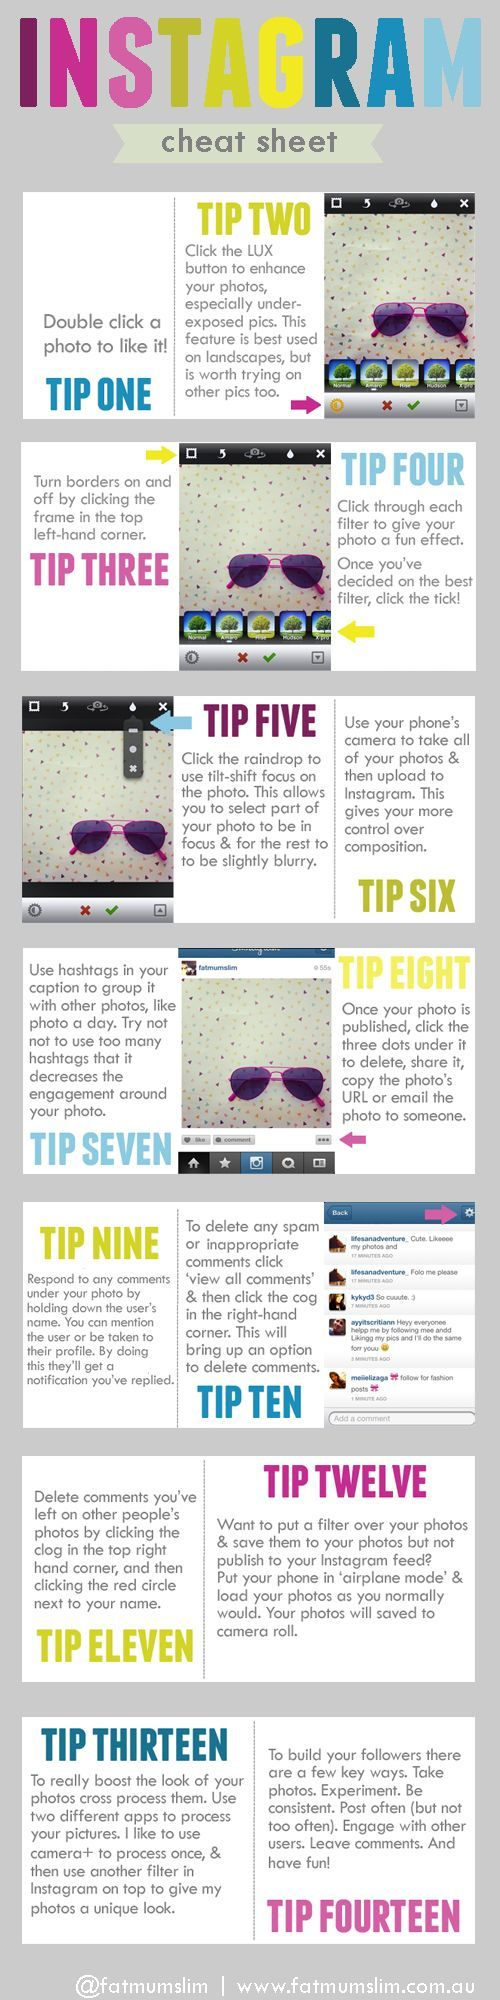 Brilliant! - Instagram #infographic Cheat Sheet. Instagram is only going to get bigger so check this out and get ahead.